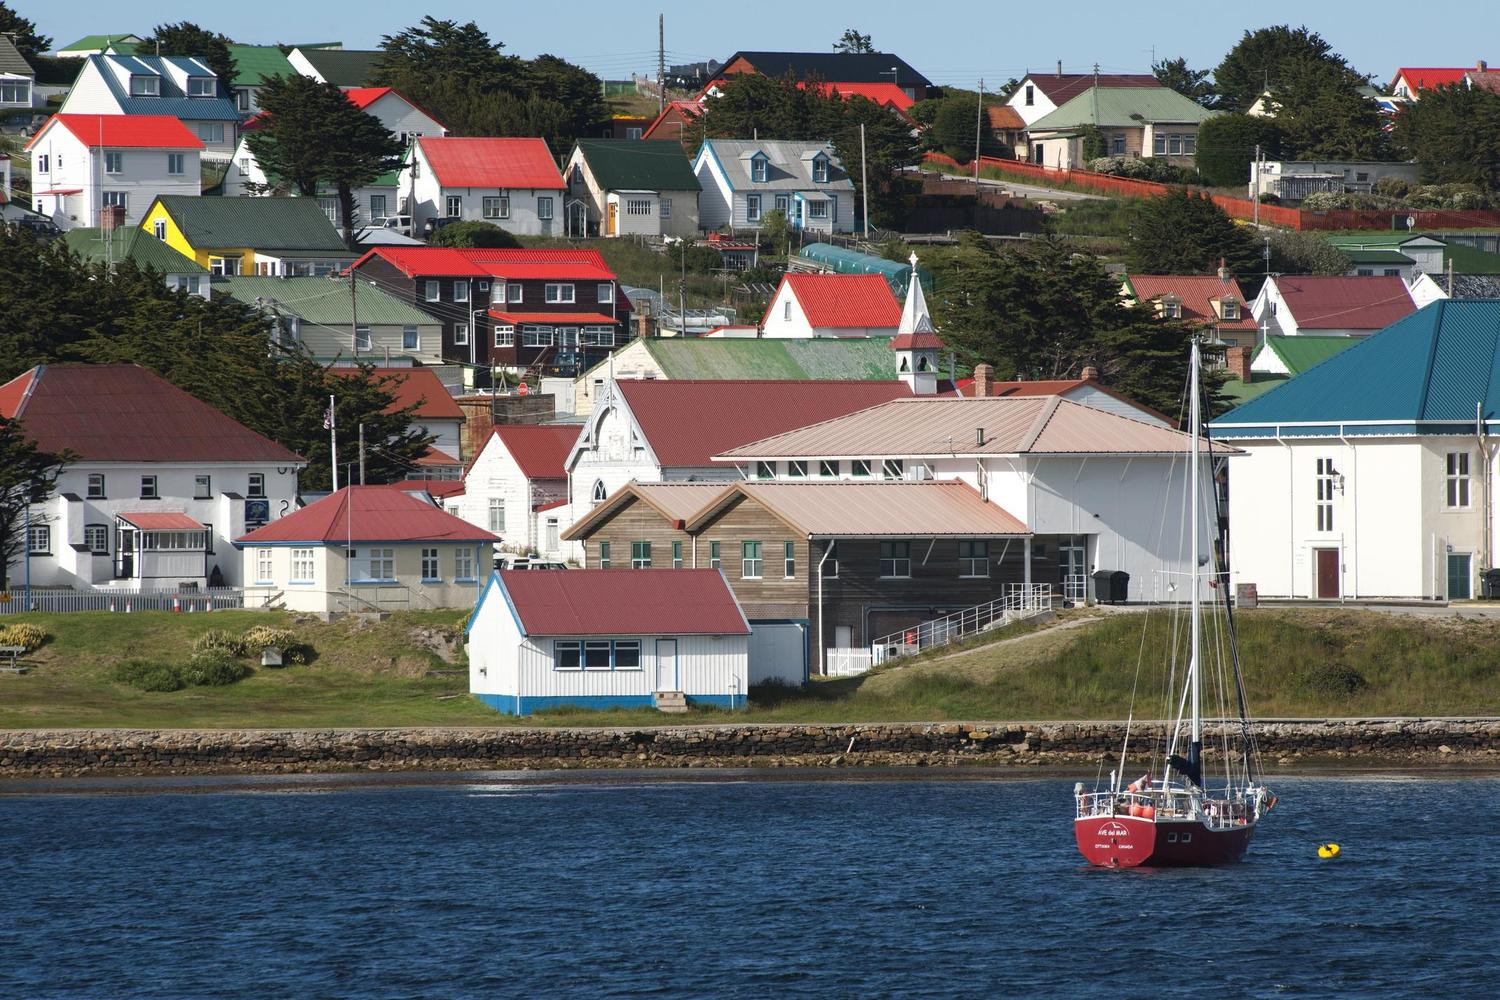 The colourful houses of Port Stanley on the Falkland Islands